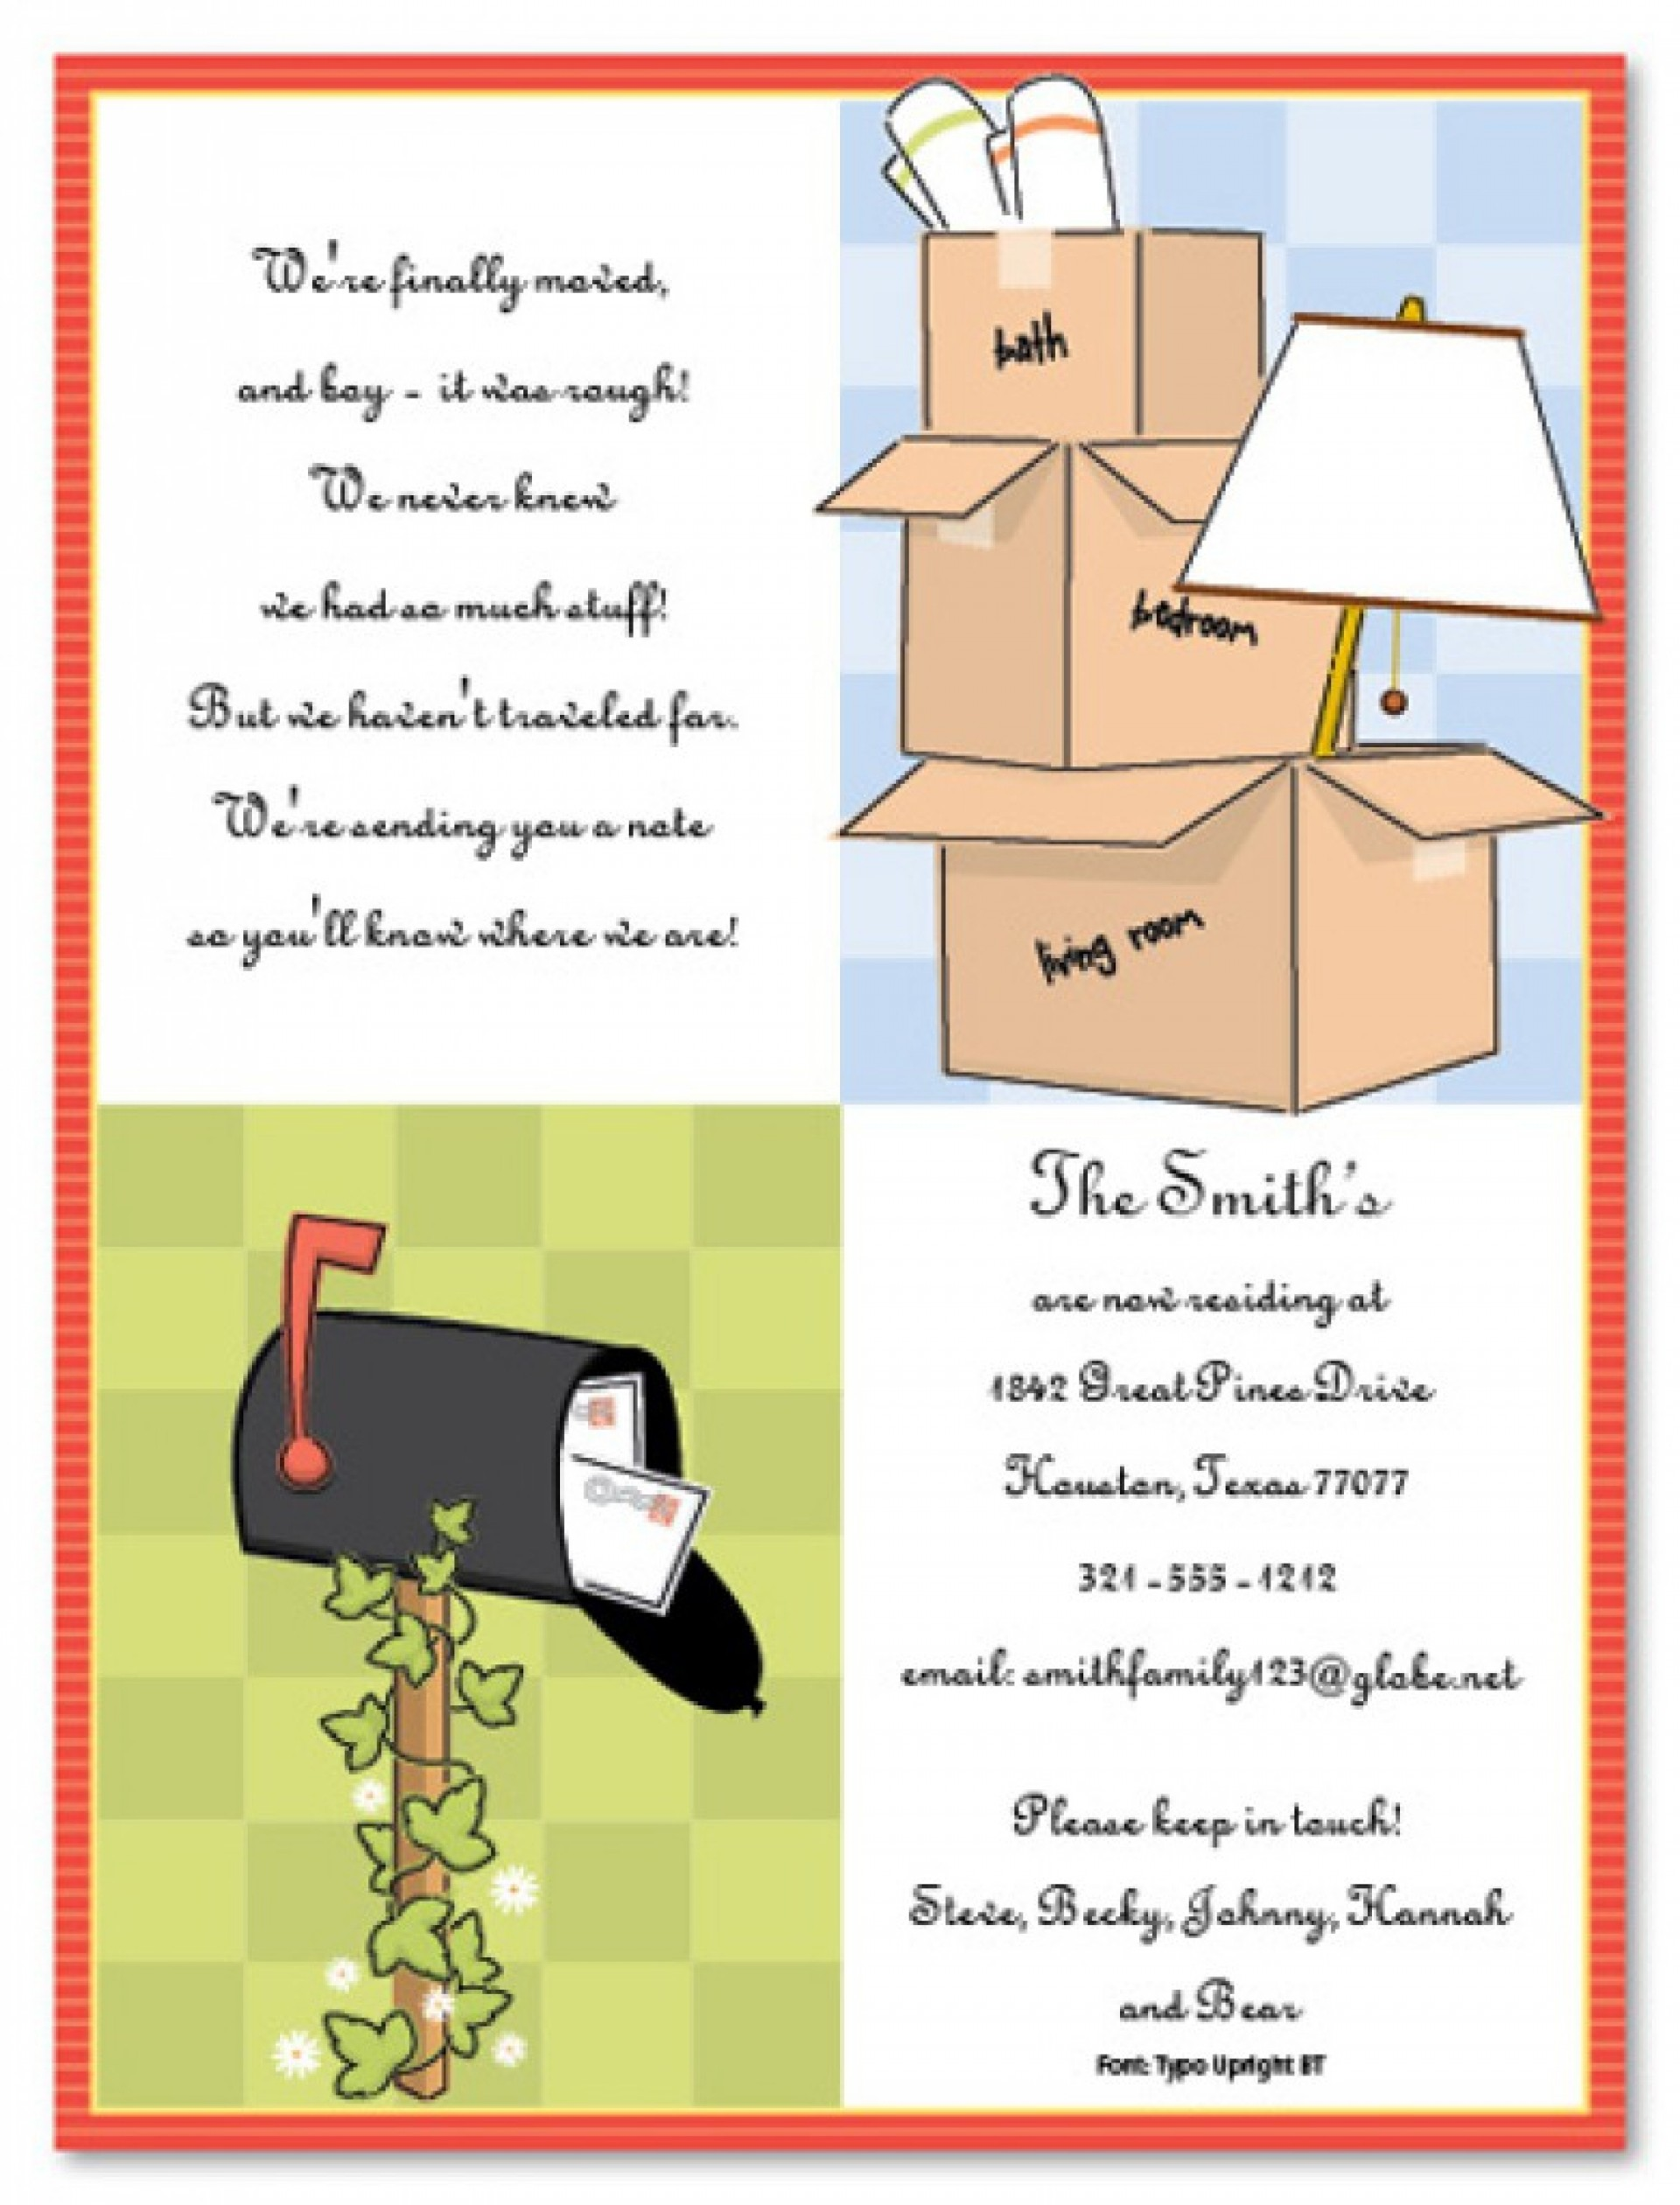 005 Remarkable Housewarming Party Invitation Template High Def  Templates Free Download Card1920